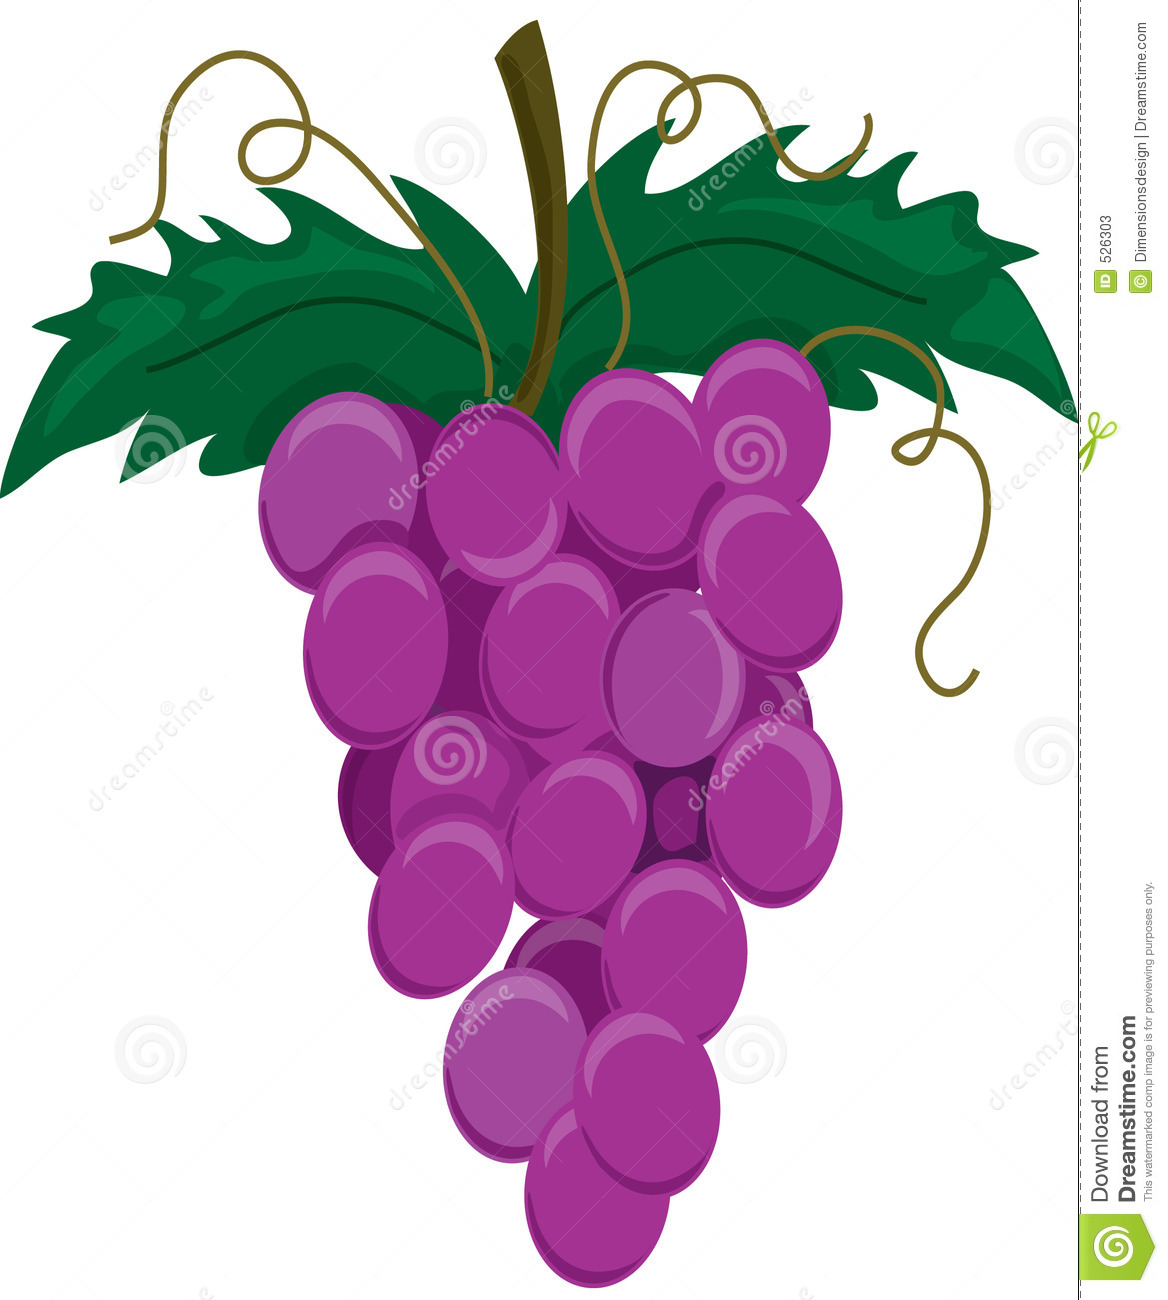 grape vine clipart at getdrawings com free for personal use grape rh getdrawings com grapevine clipart black and white grapevine clipart black and white